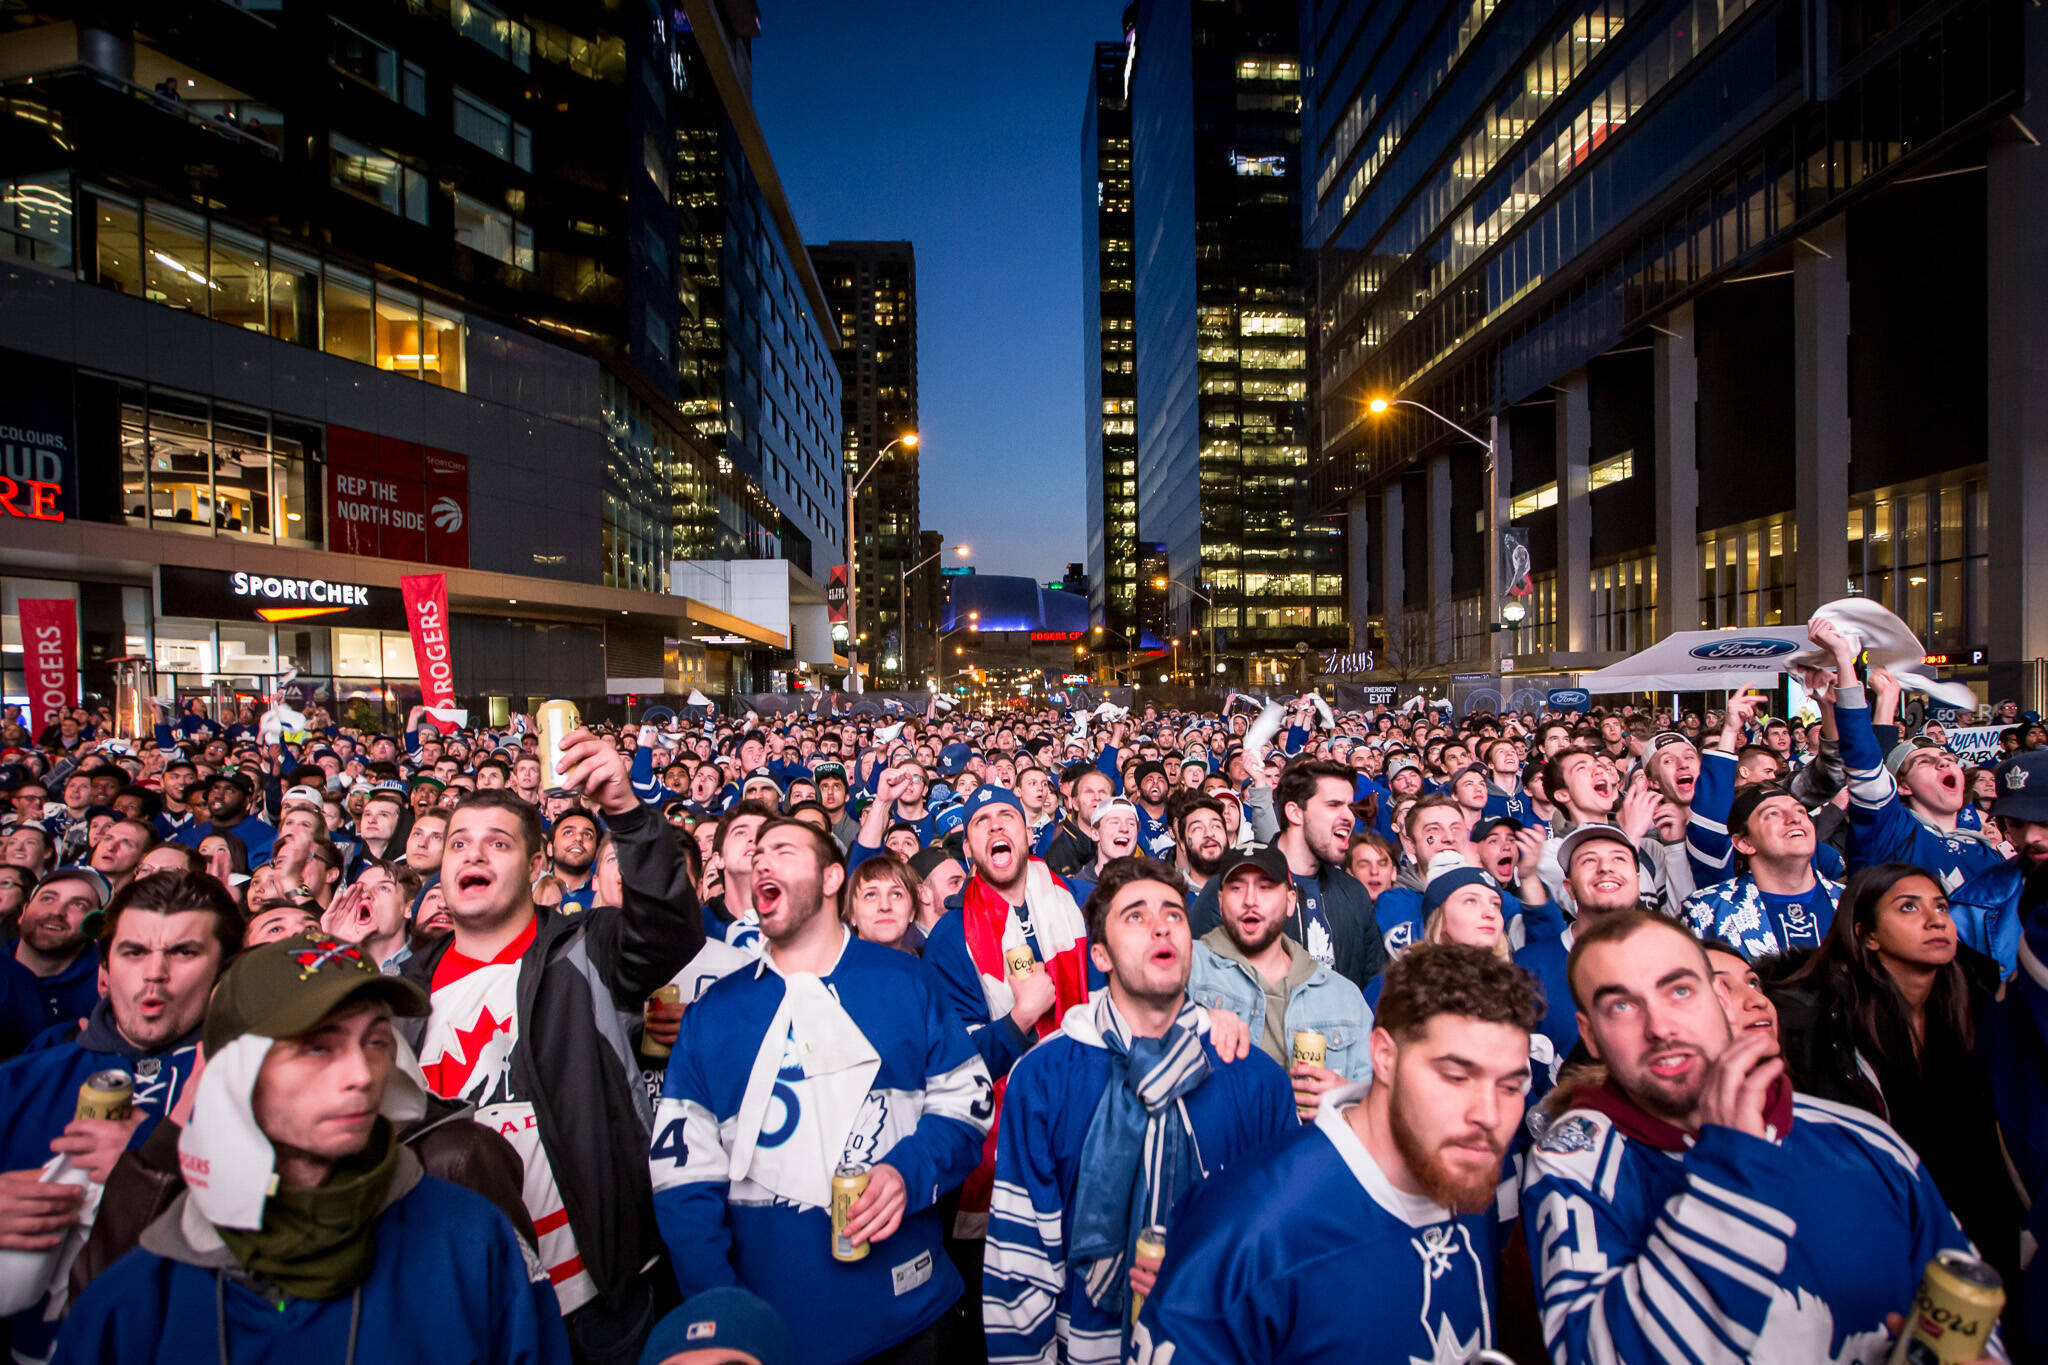 super popular 537d2 36473 Toronto Maple Leafs Tailgate Party